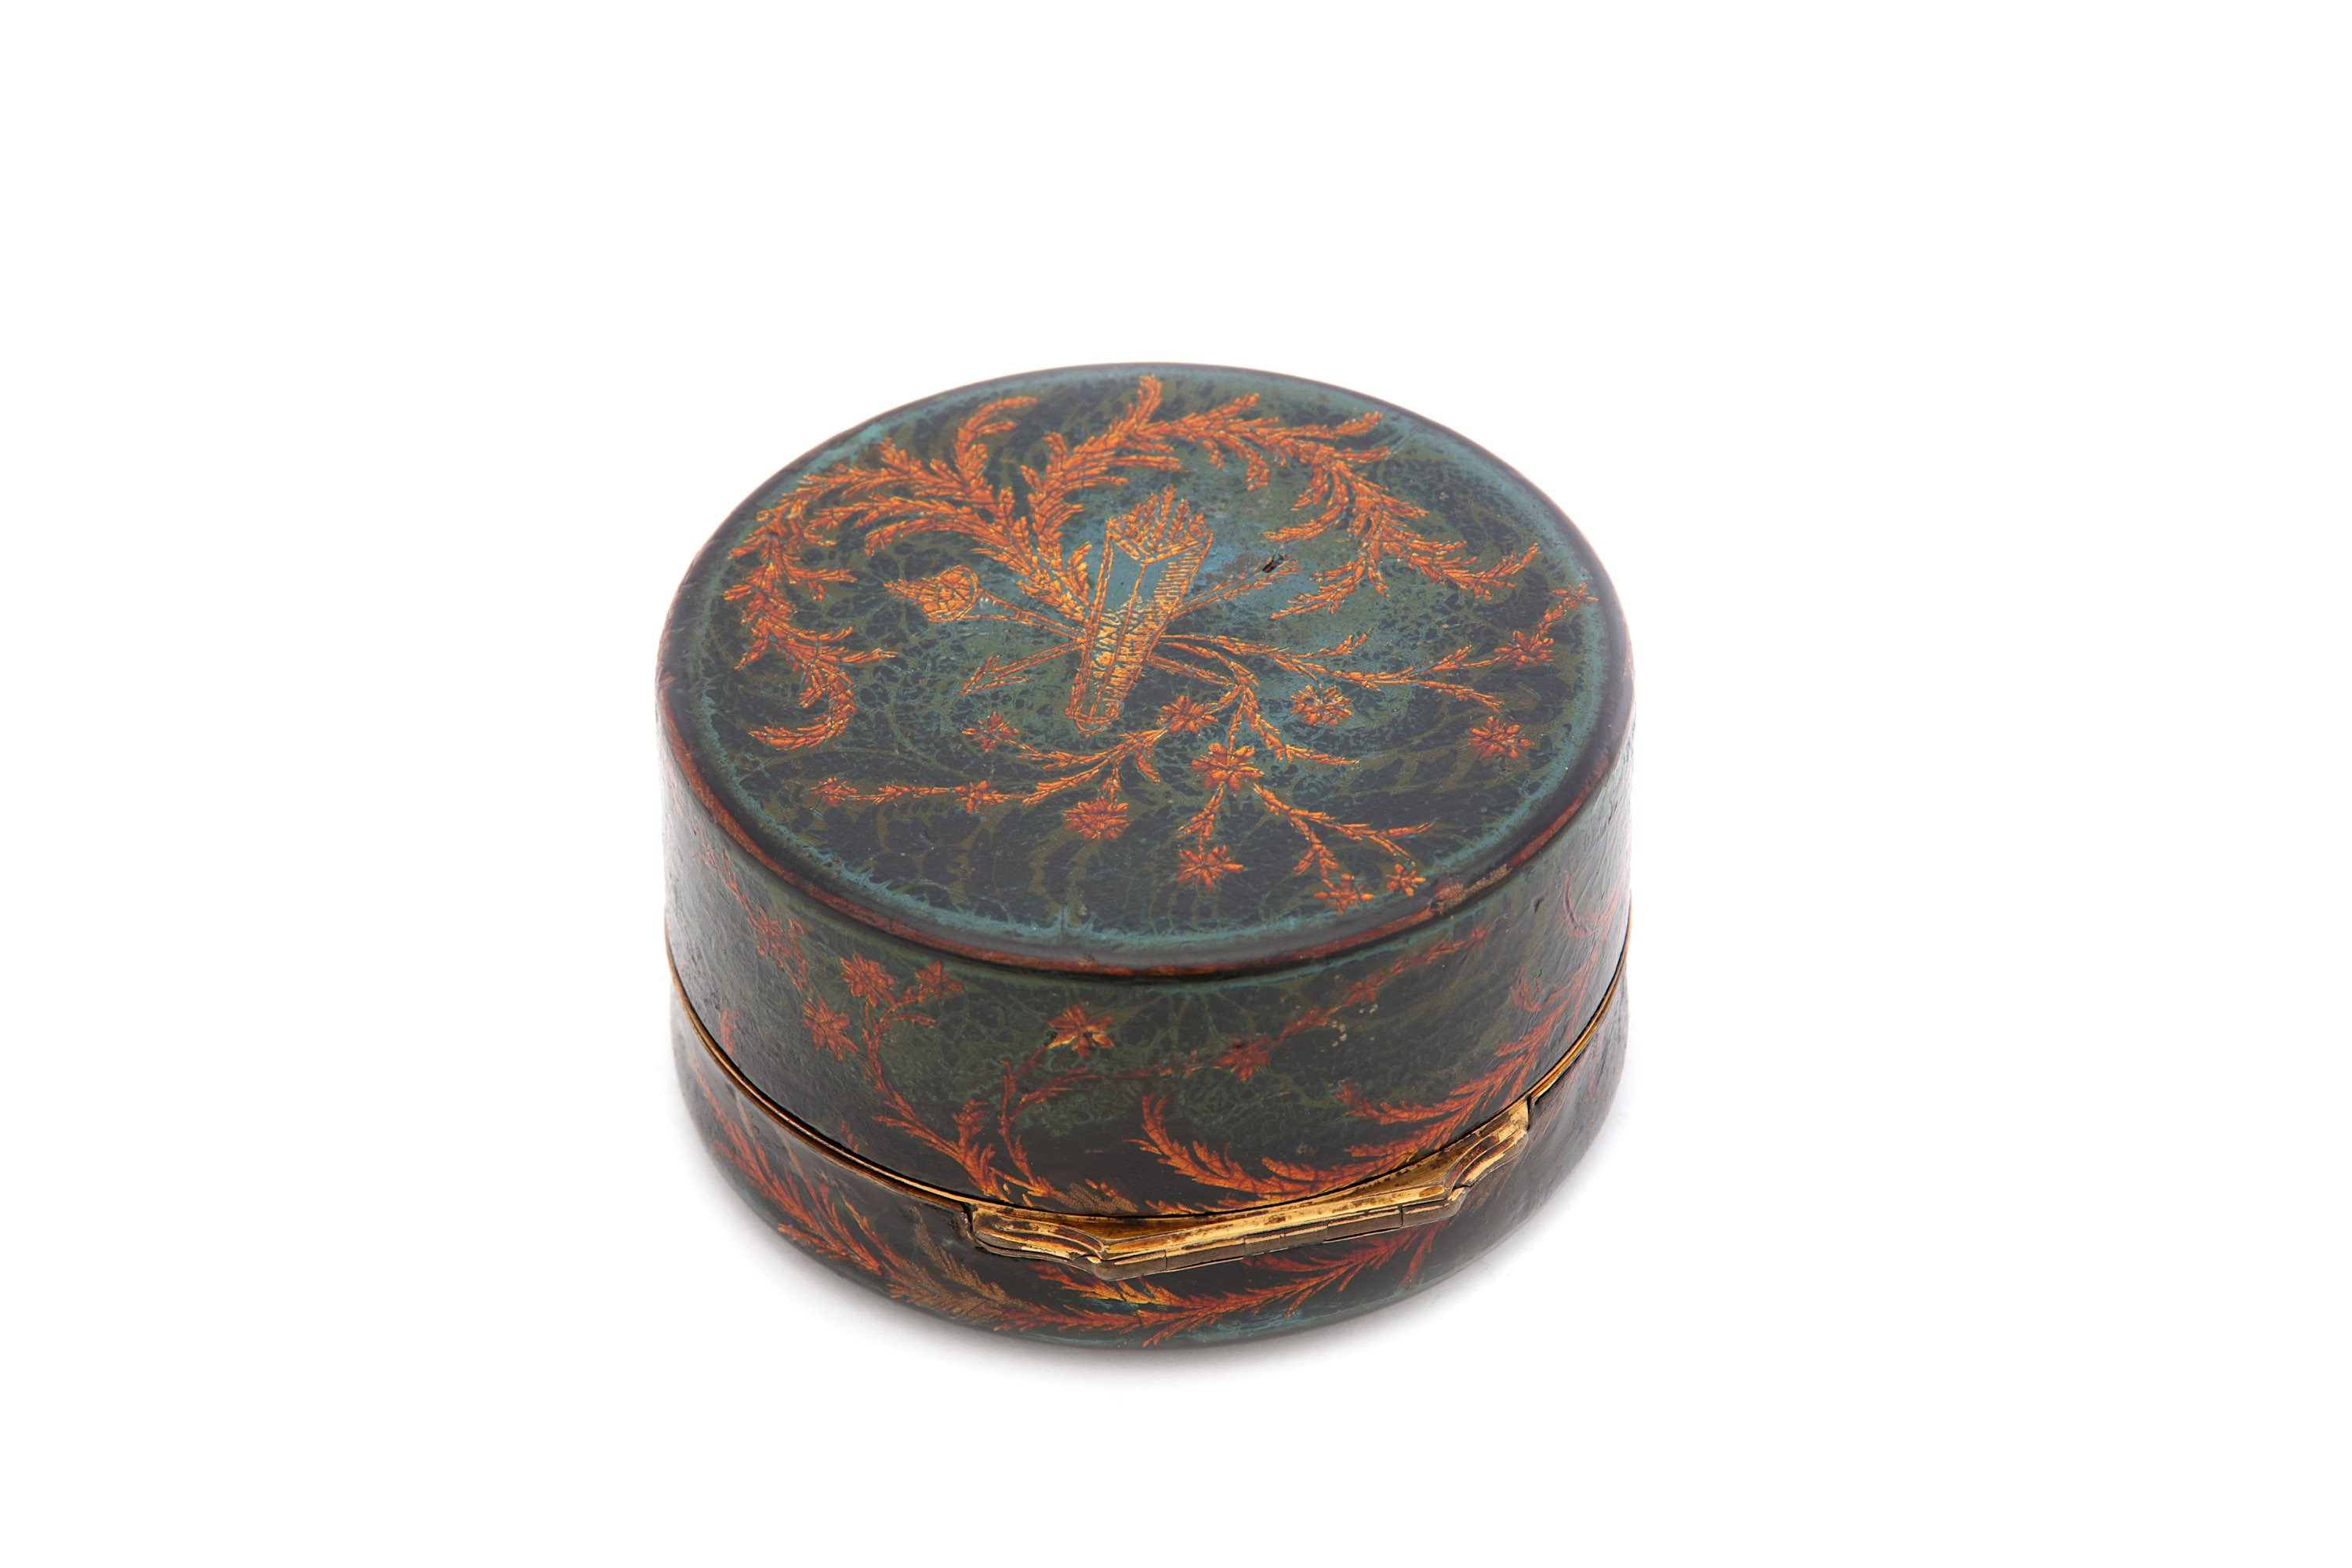 Lot 44 - A late 18th century French vernis martin snuff box